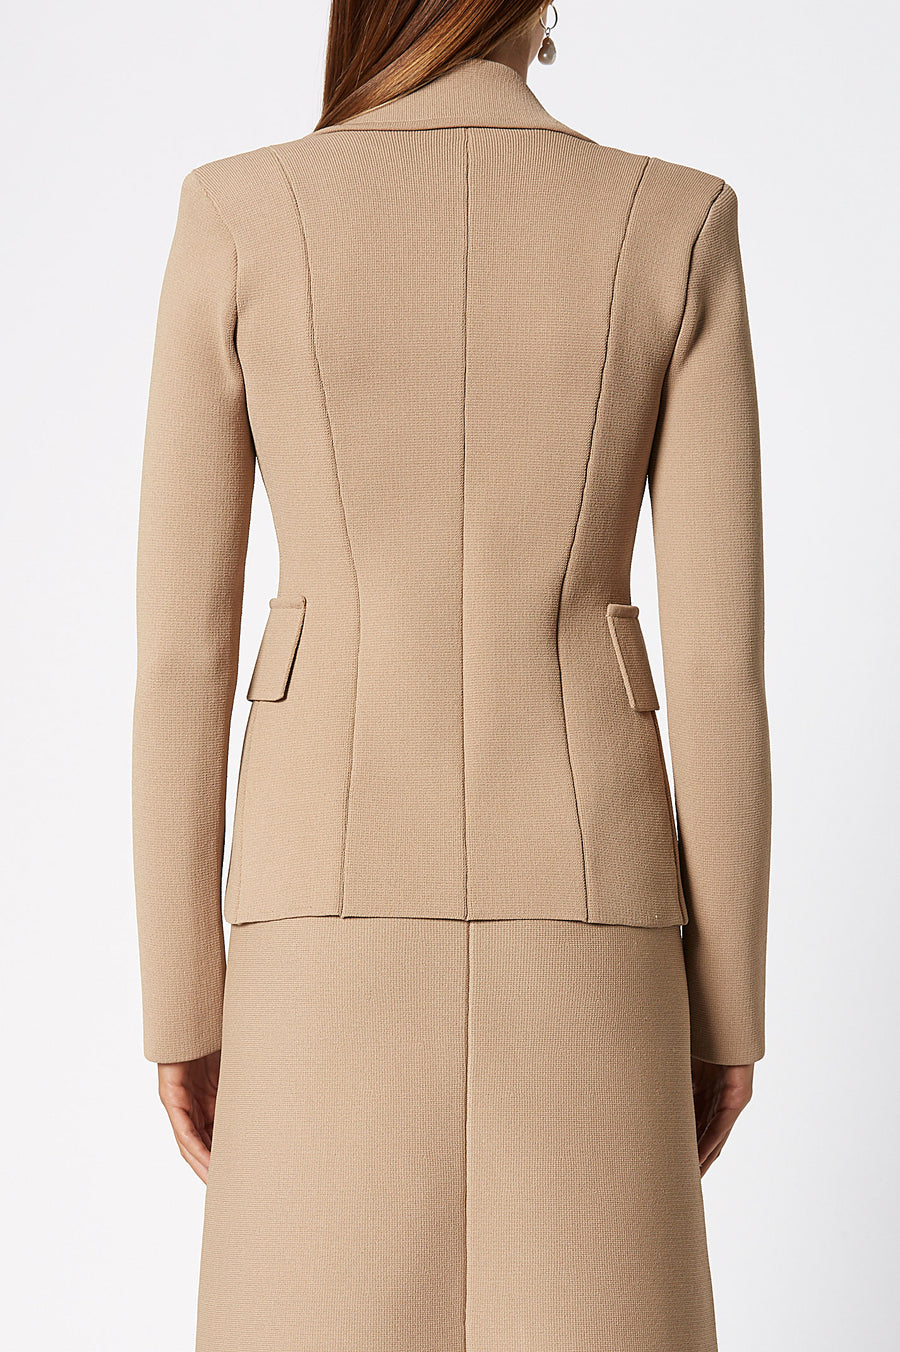 Crepe Knit Tailored Jacket, sharp lapels, shoulder pads, double breasted silhouette, Color Camel